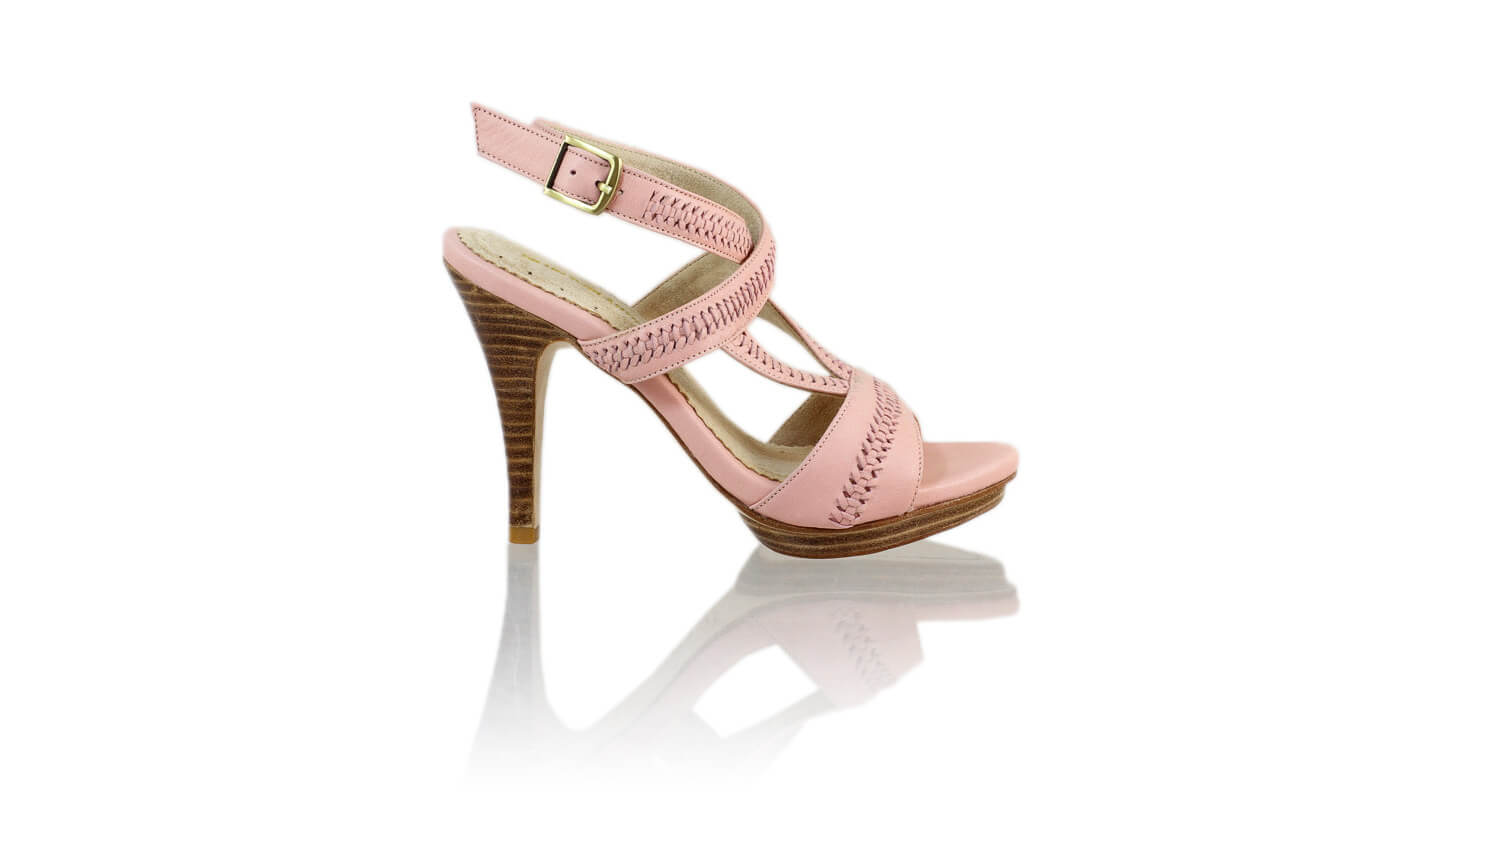 Leather-shoes-Peru 115mm SH PF - Soft Pink-sandals higheel-NILUH DJELANTIK-NILUH DJELANTIK